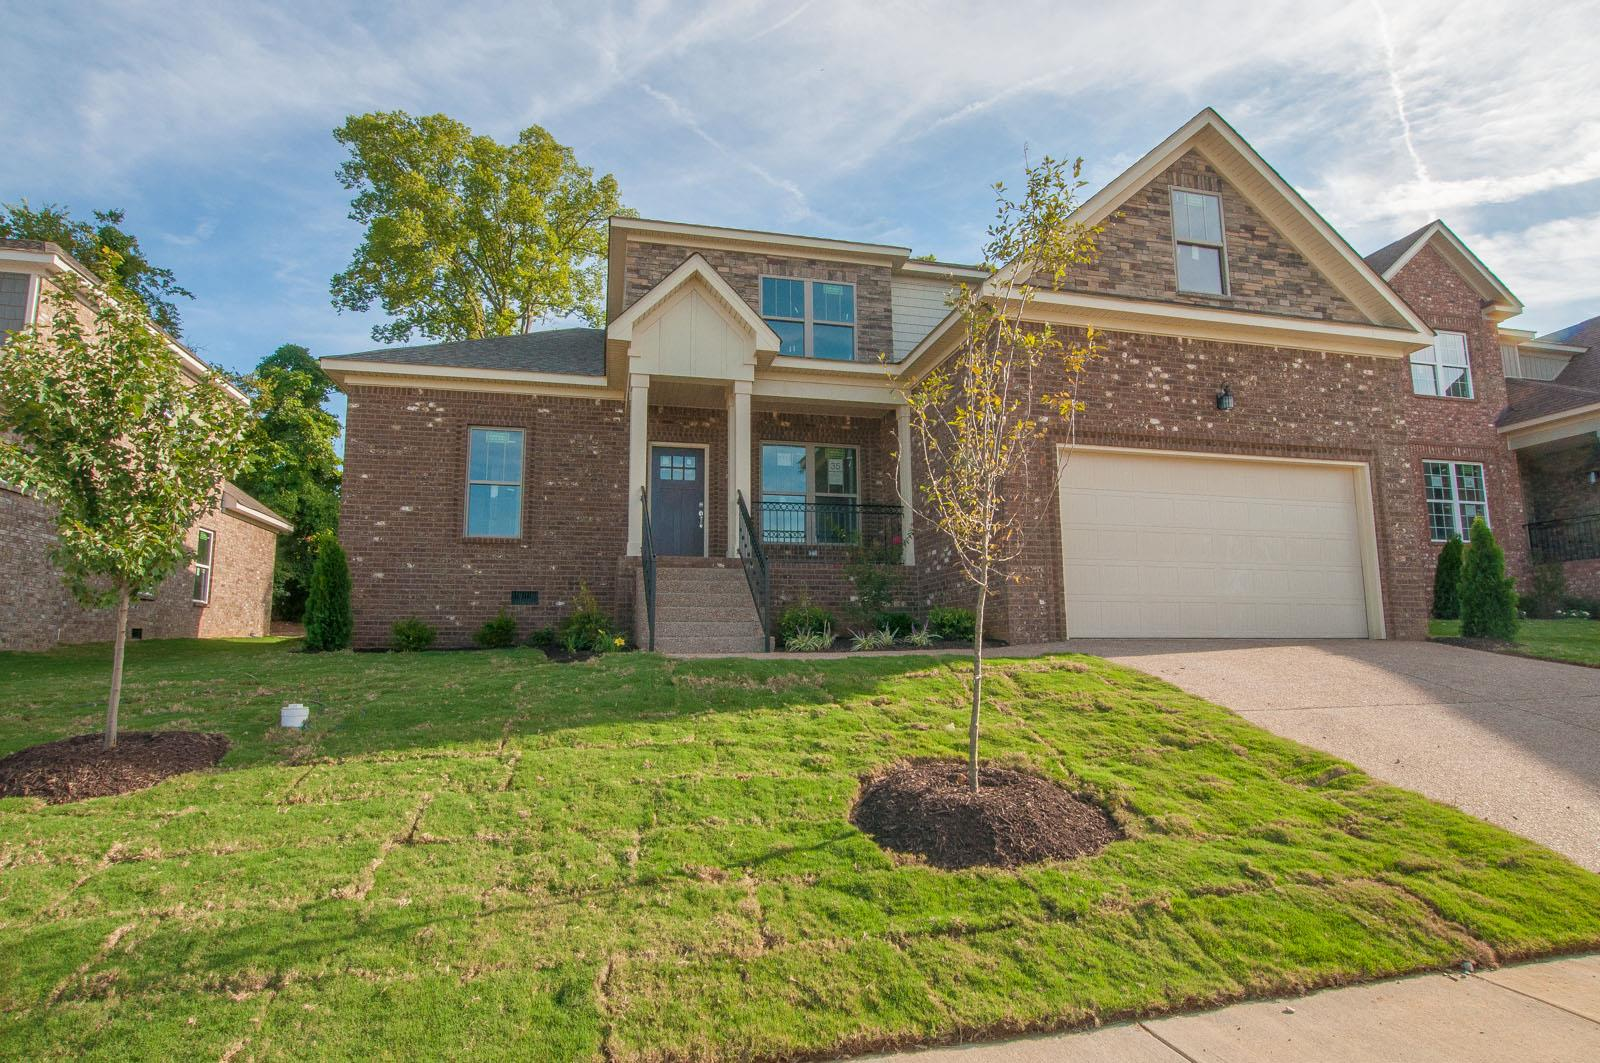 7113 SILVERWOOD TRAIL 37076 - One of Hermitage Homes for Sale